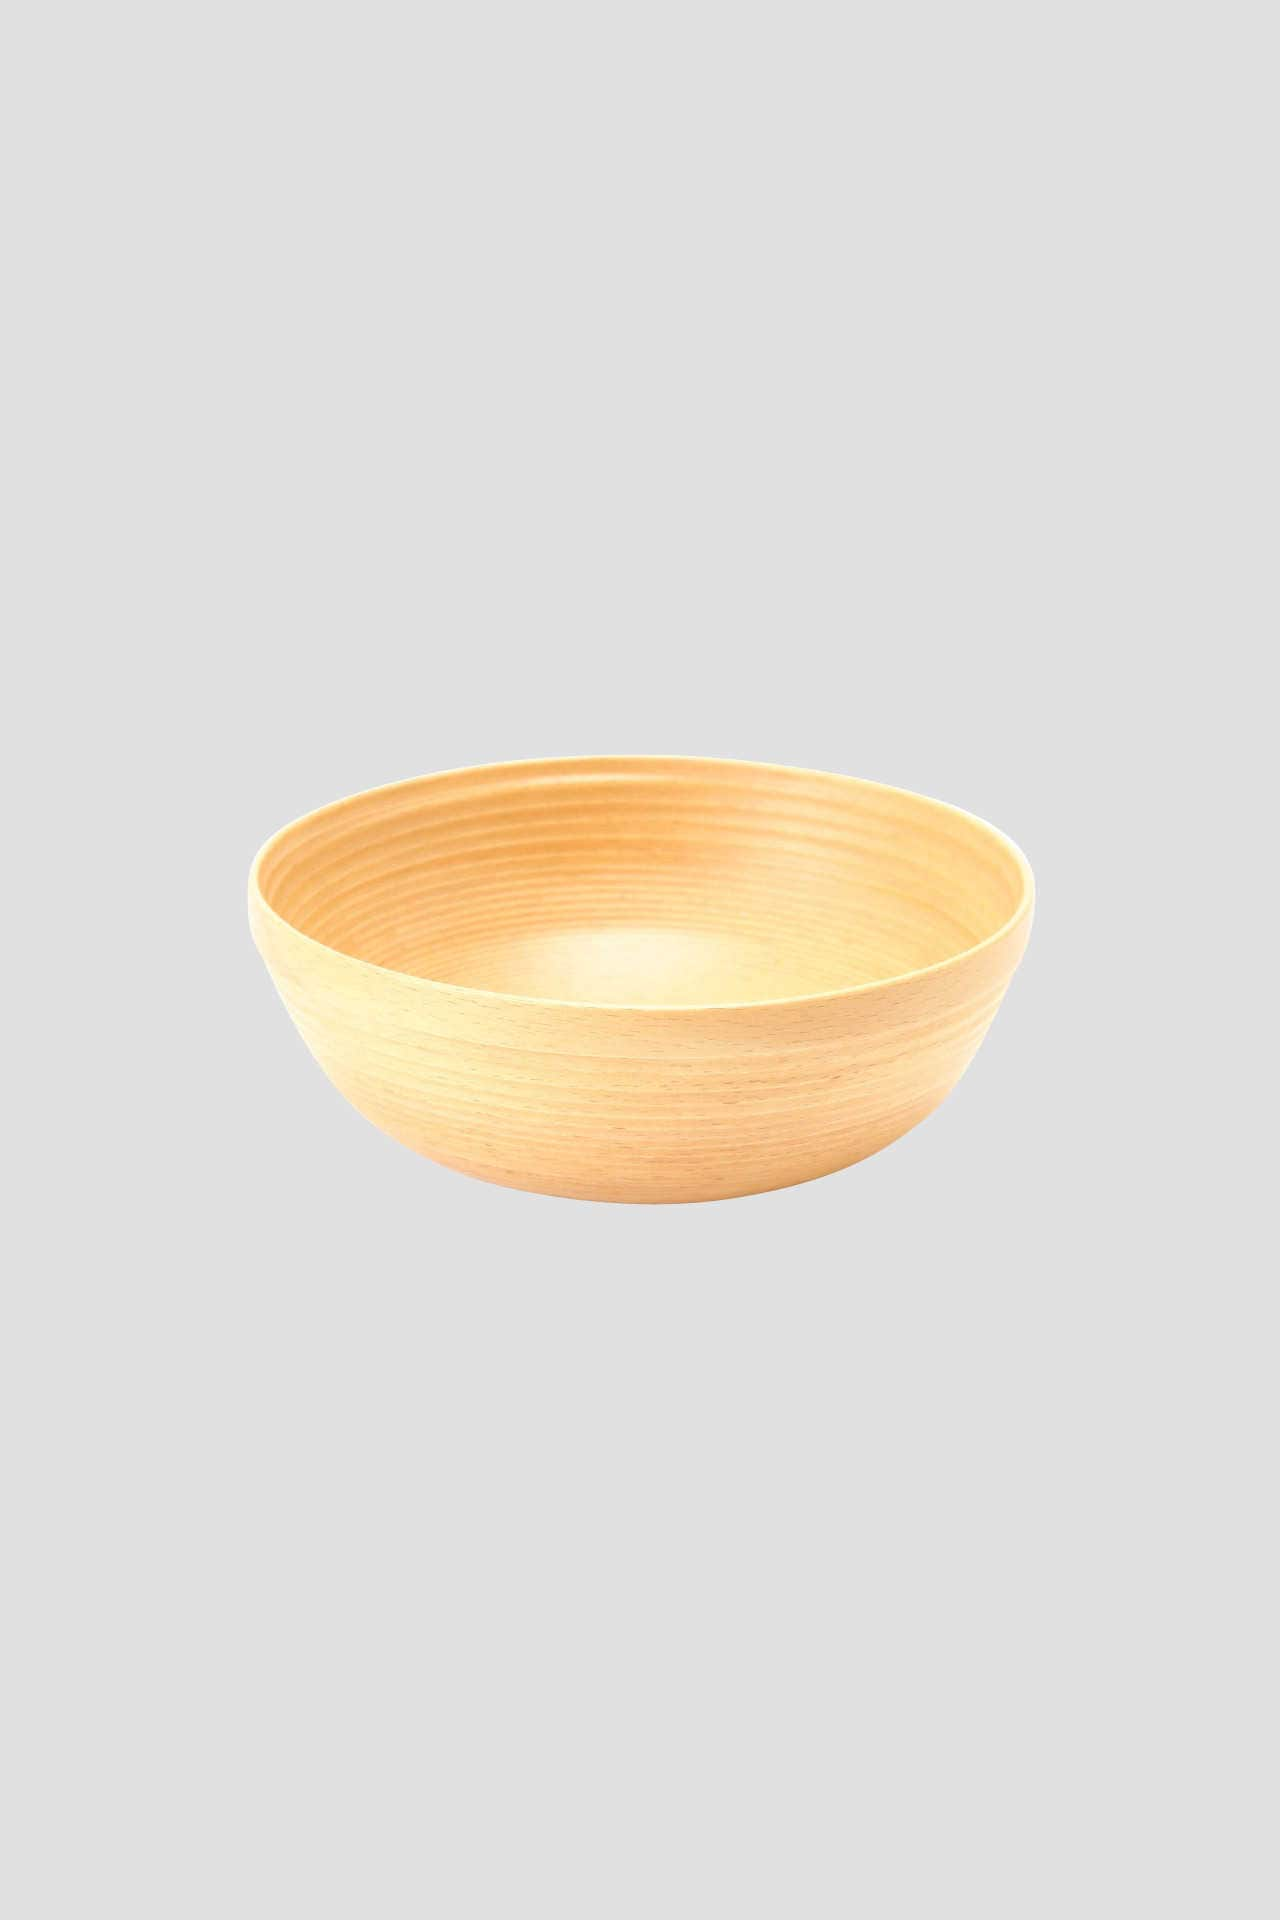 BUNACO ORIGINAL BOWL SMALL2